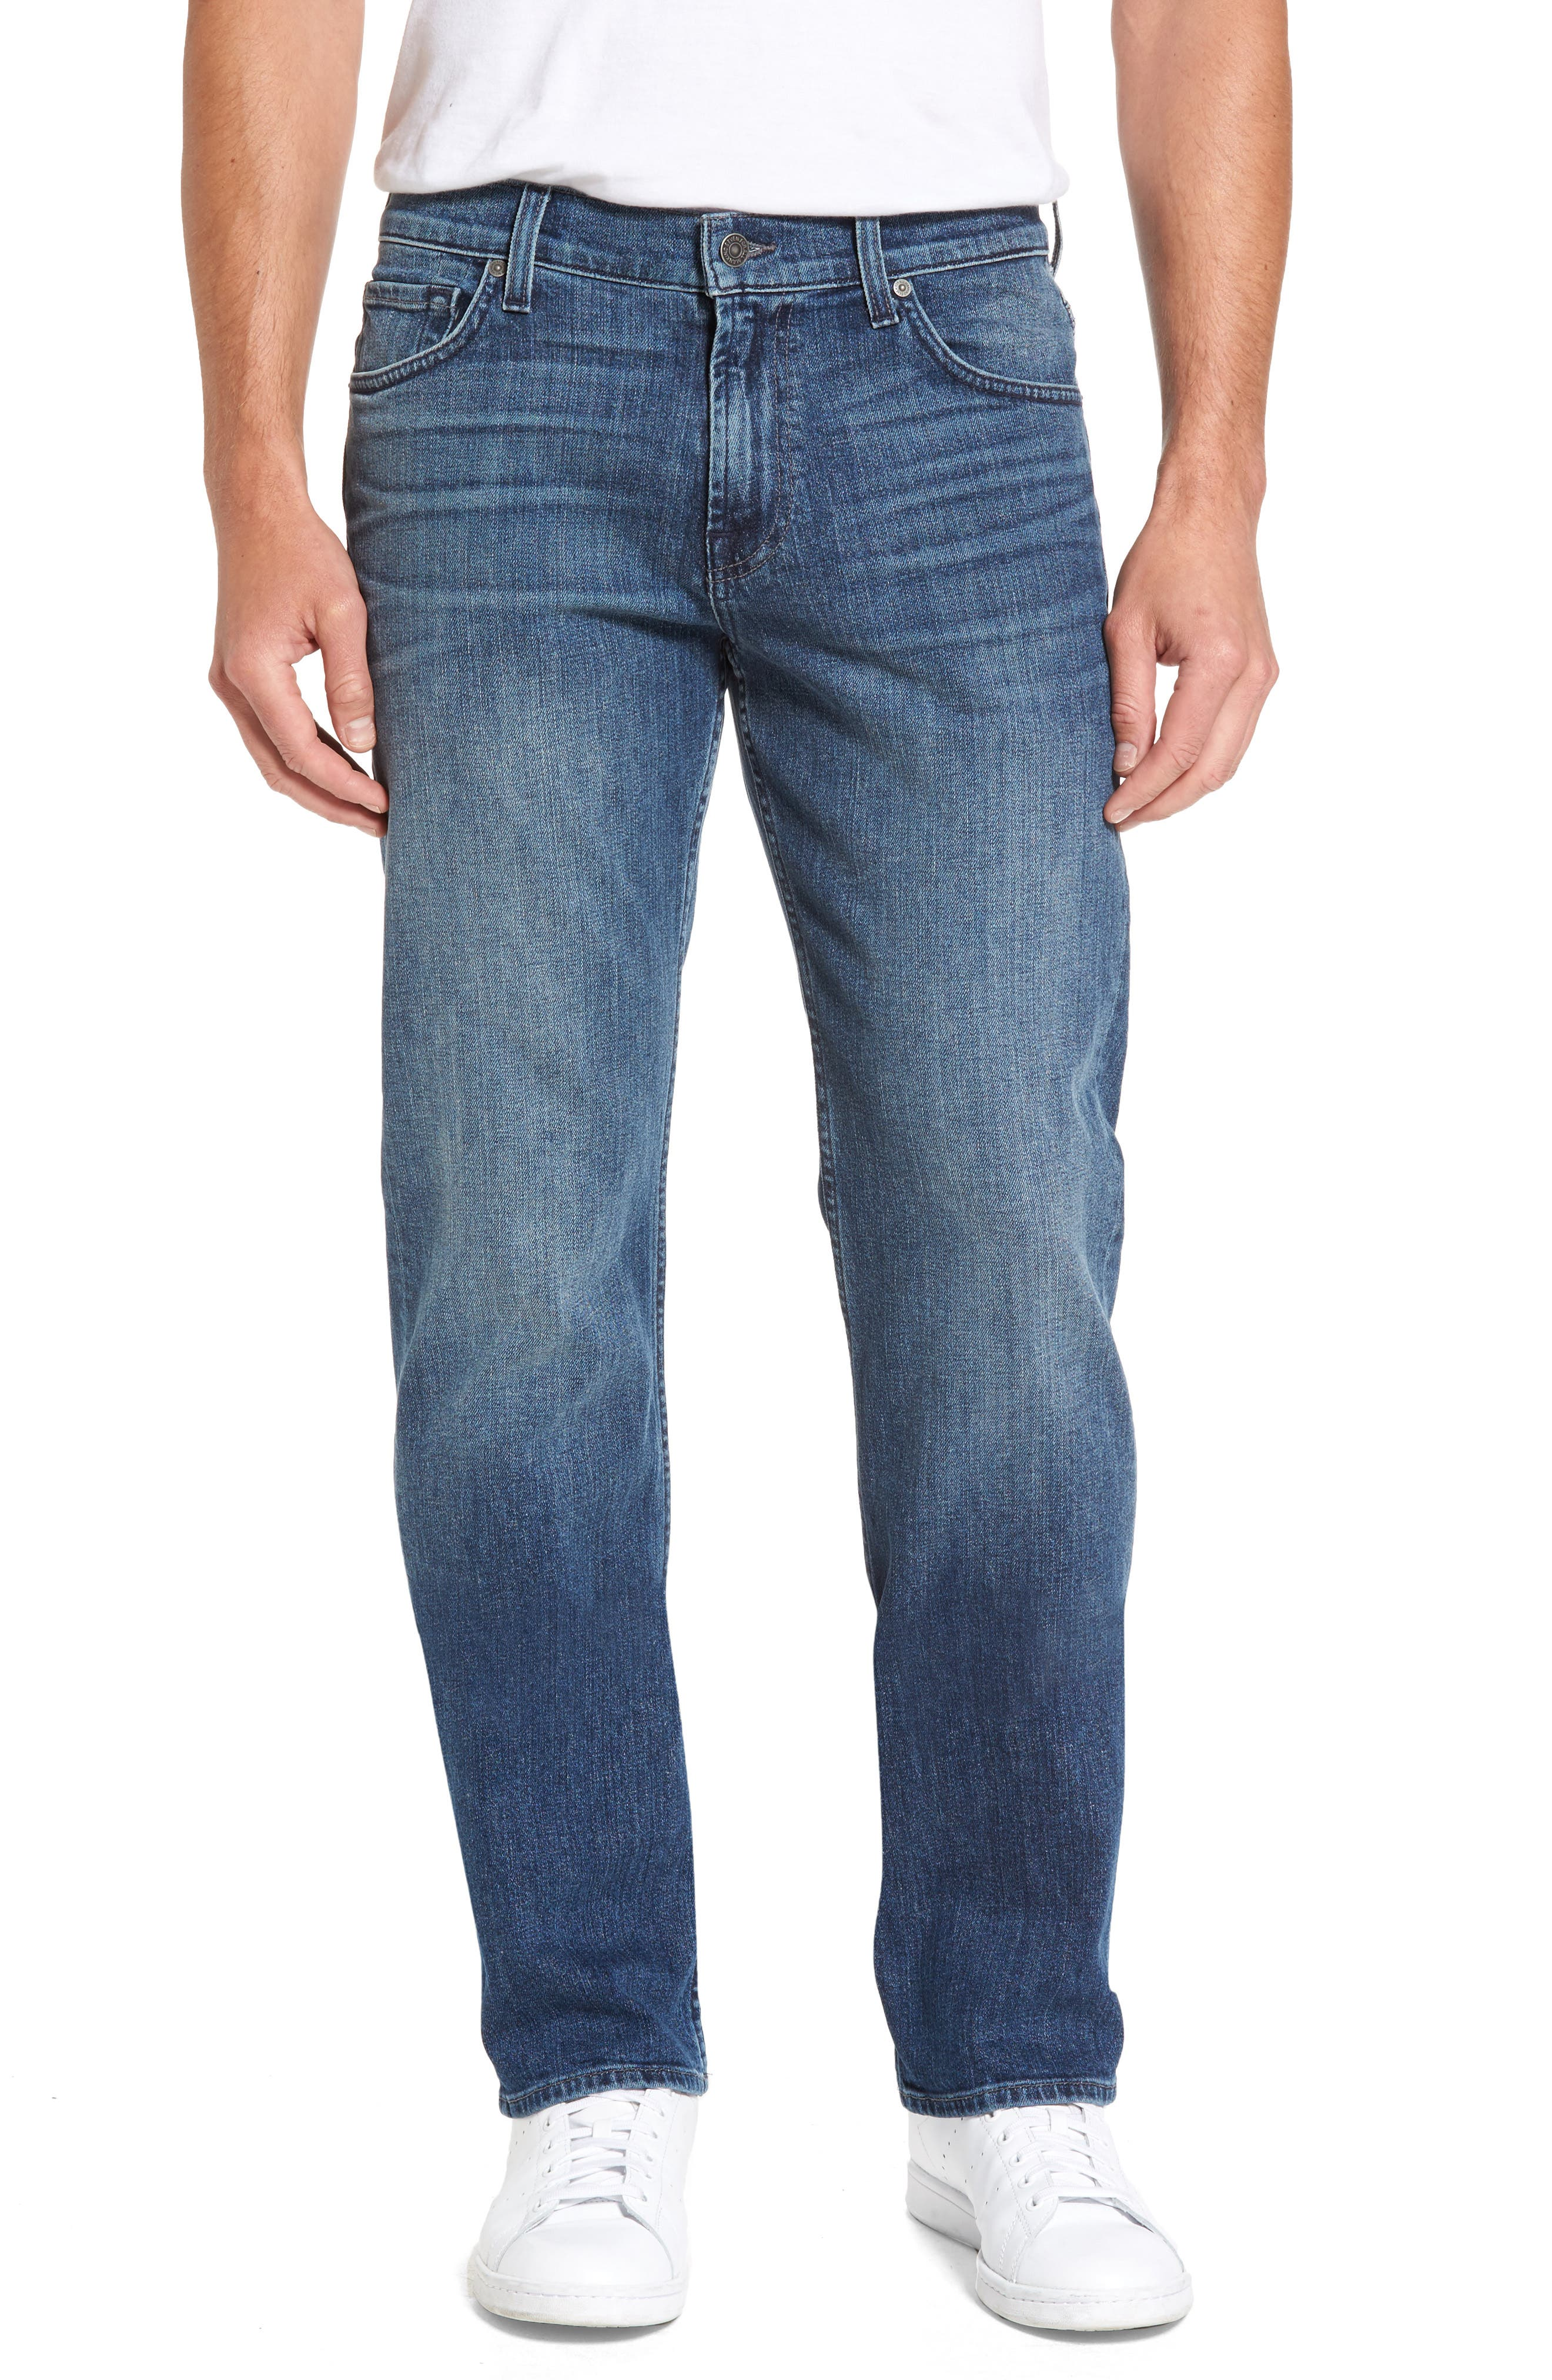 Austyn Relaxed Fit Jeans,                             Main thumbnail 1, color,                             Townsend